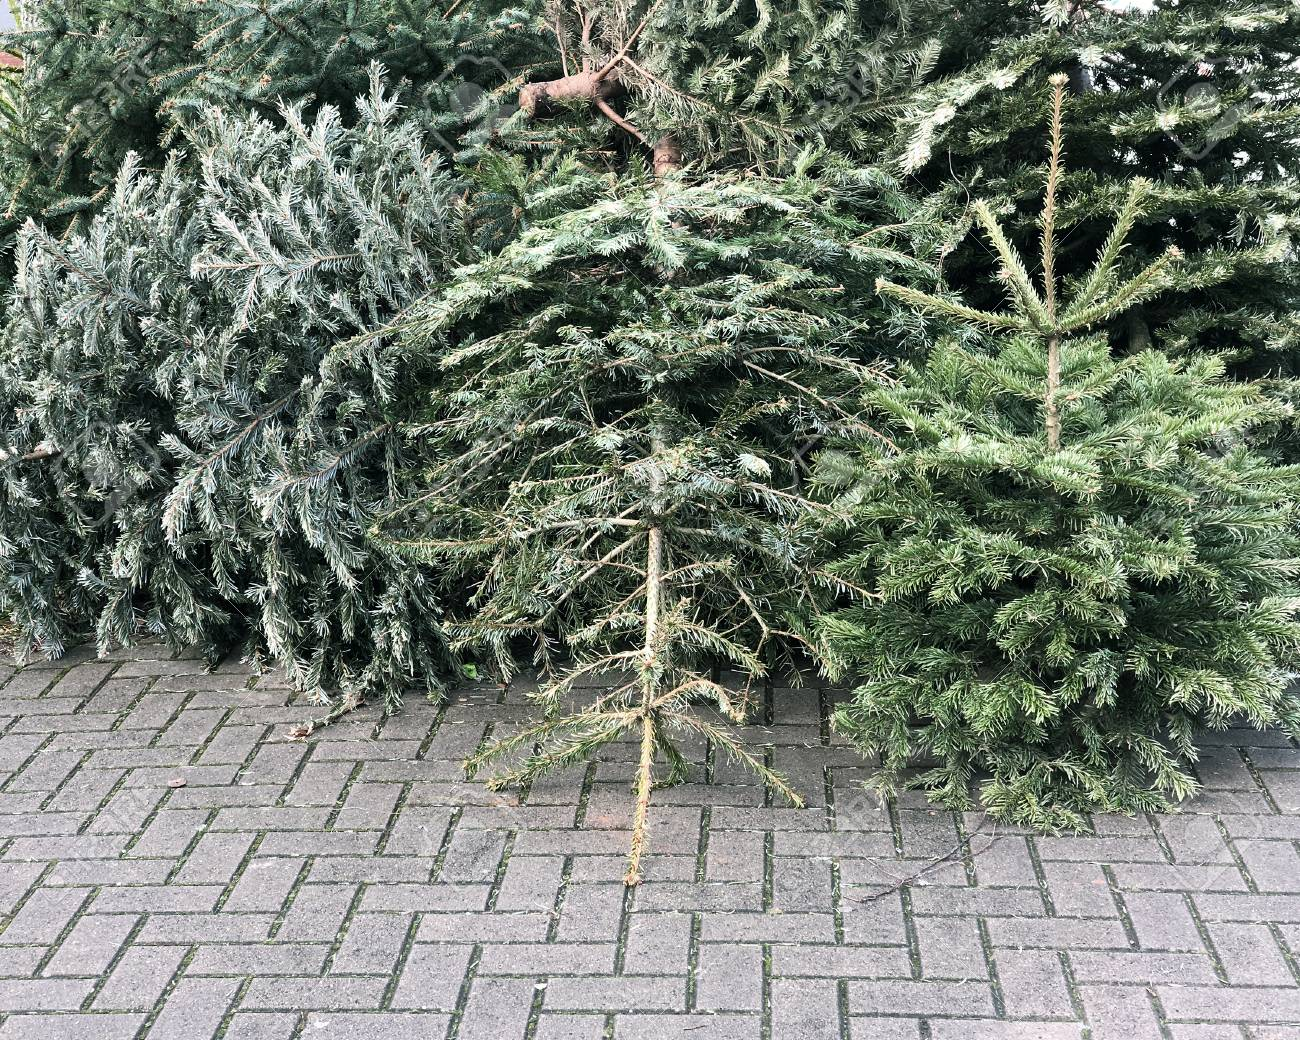 discarded christmas trees piled on pavement for trash collection